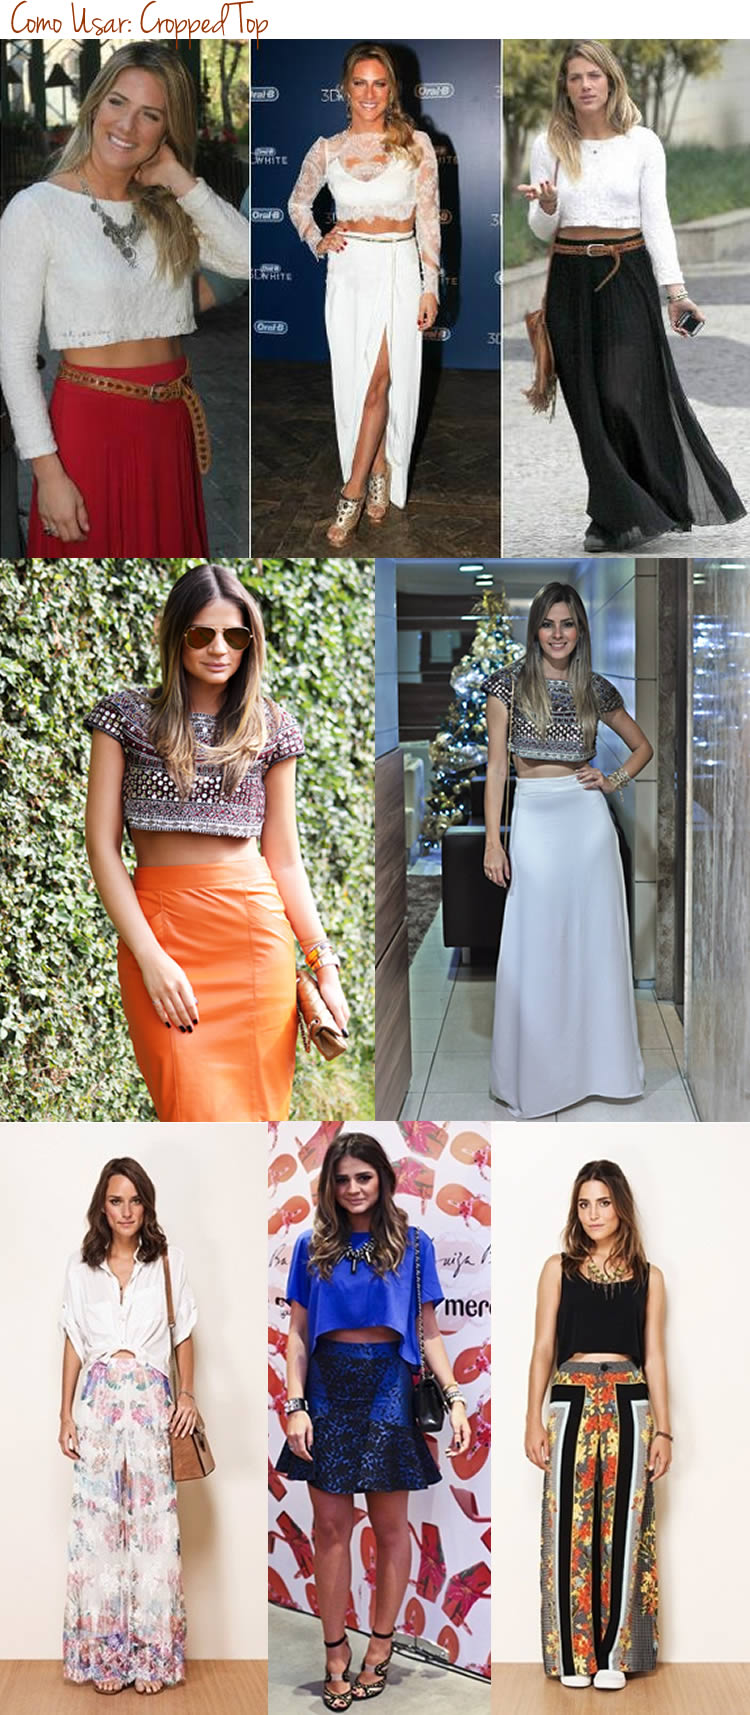 como-usar-cropped-top-tendencia-cropped-top